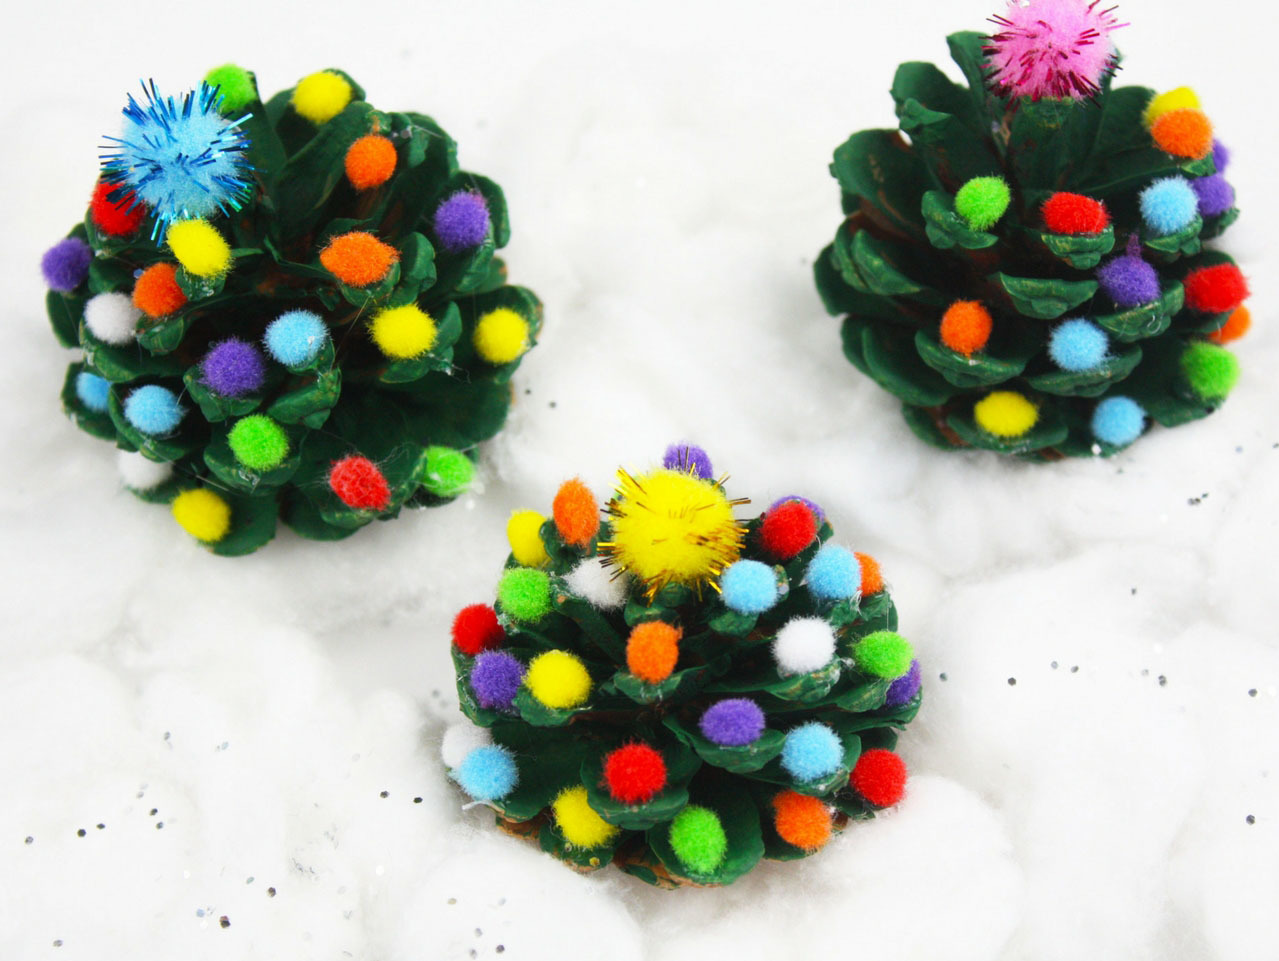 If you're looking for some fun Christmas crafts for your kiddos, that are easy to do, I've got you covered. These rustic Christmas crafts are so much fun to make!